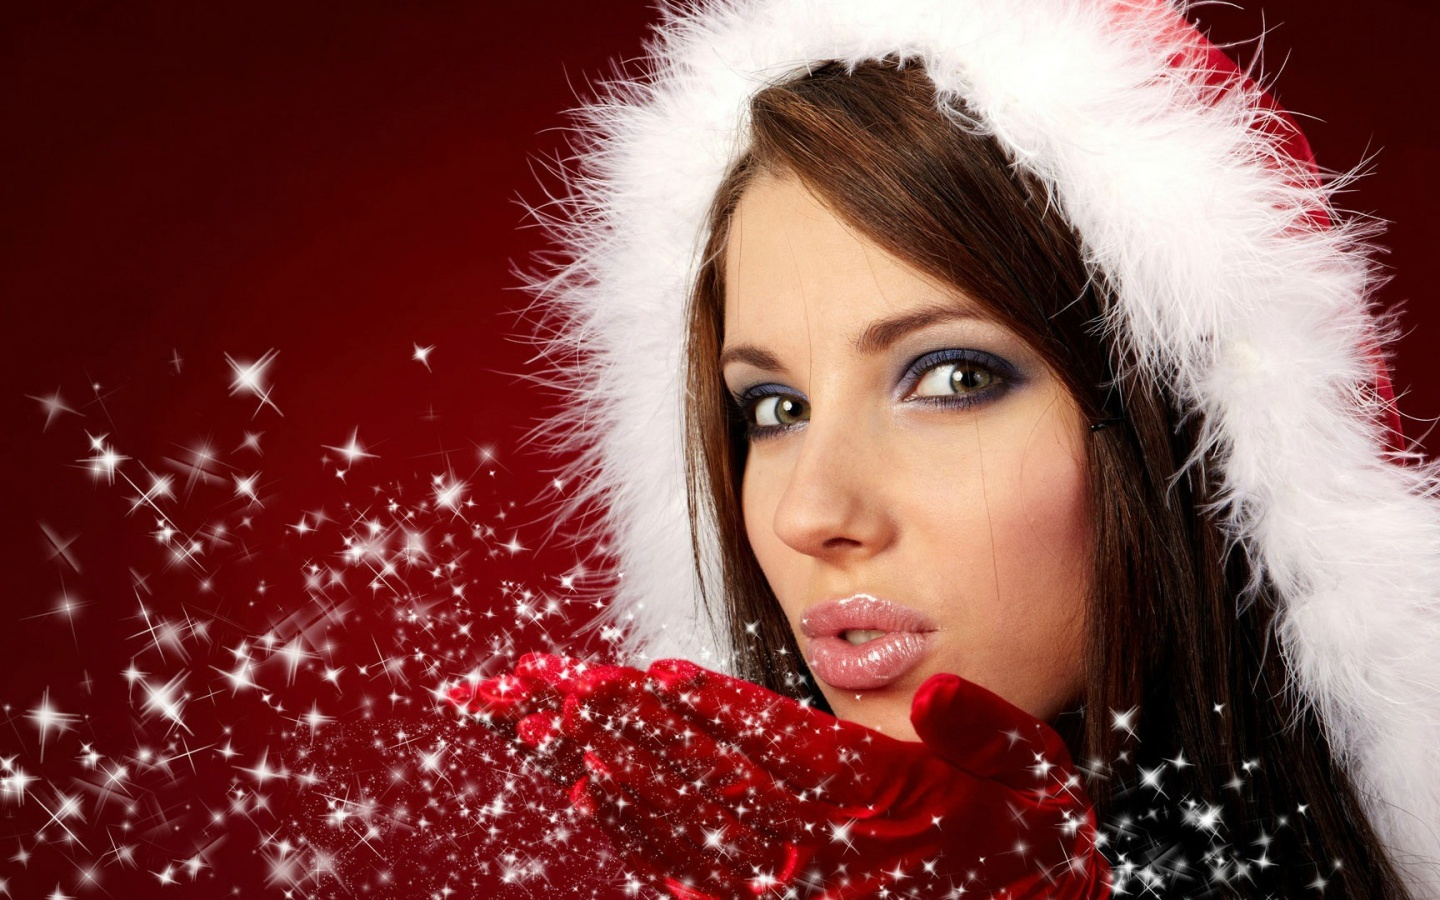 Beautiful Santa Girl Wallpapers